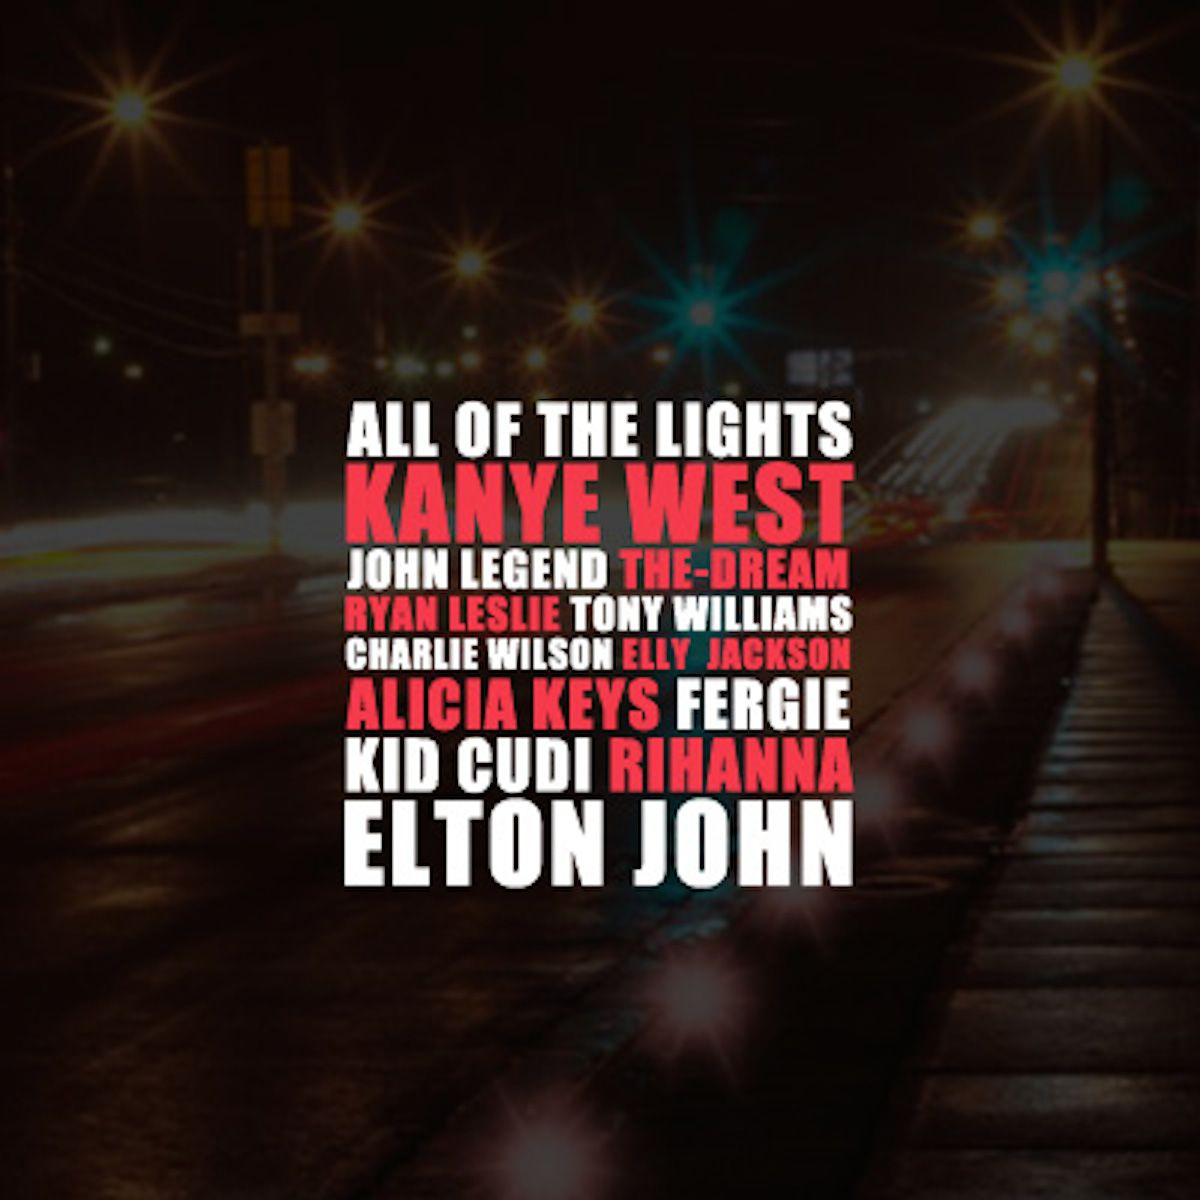 All Of The Lights Feat Rihanna And Kid Cudi All Of The Lights Kanye West Songs Kanye West